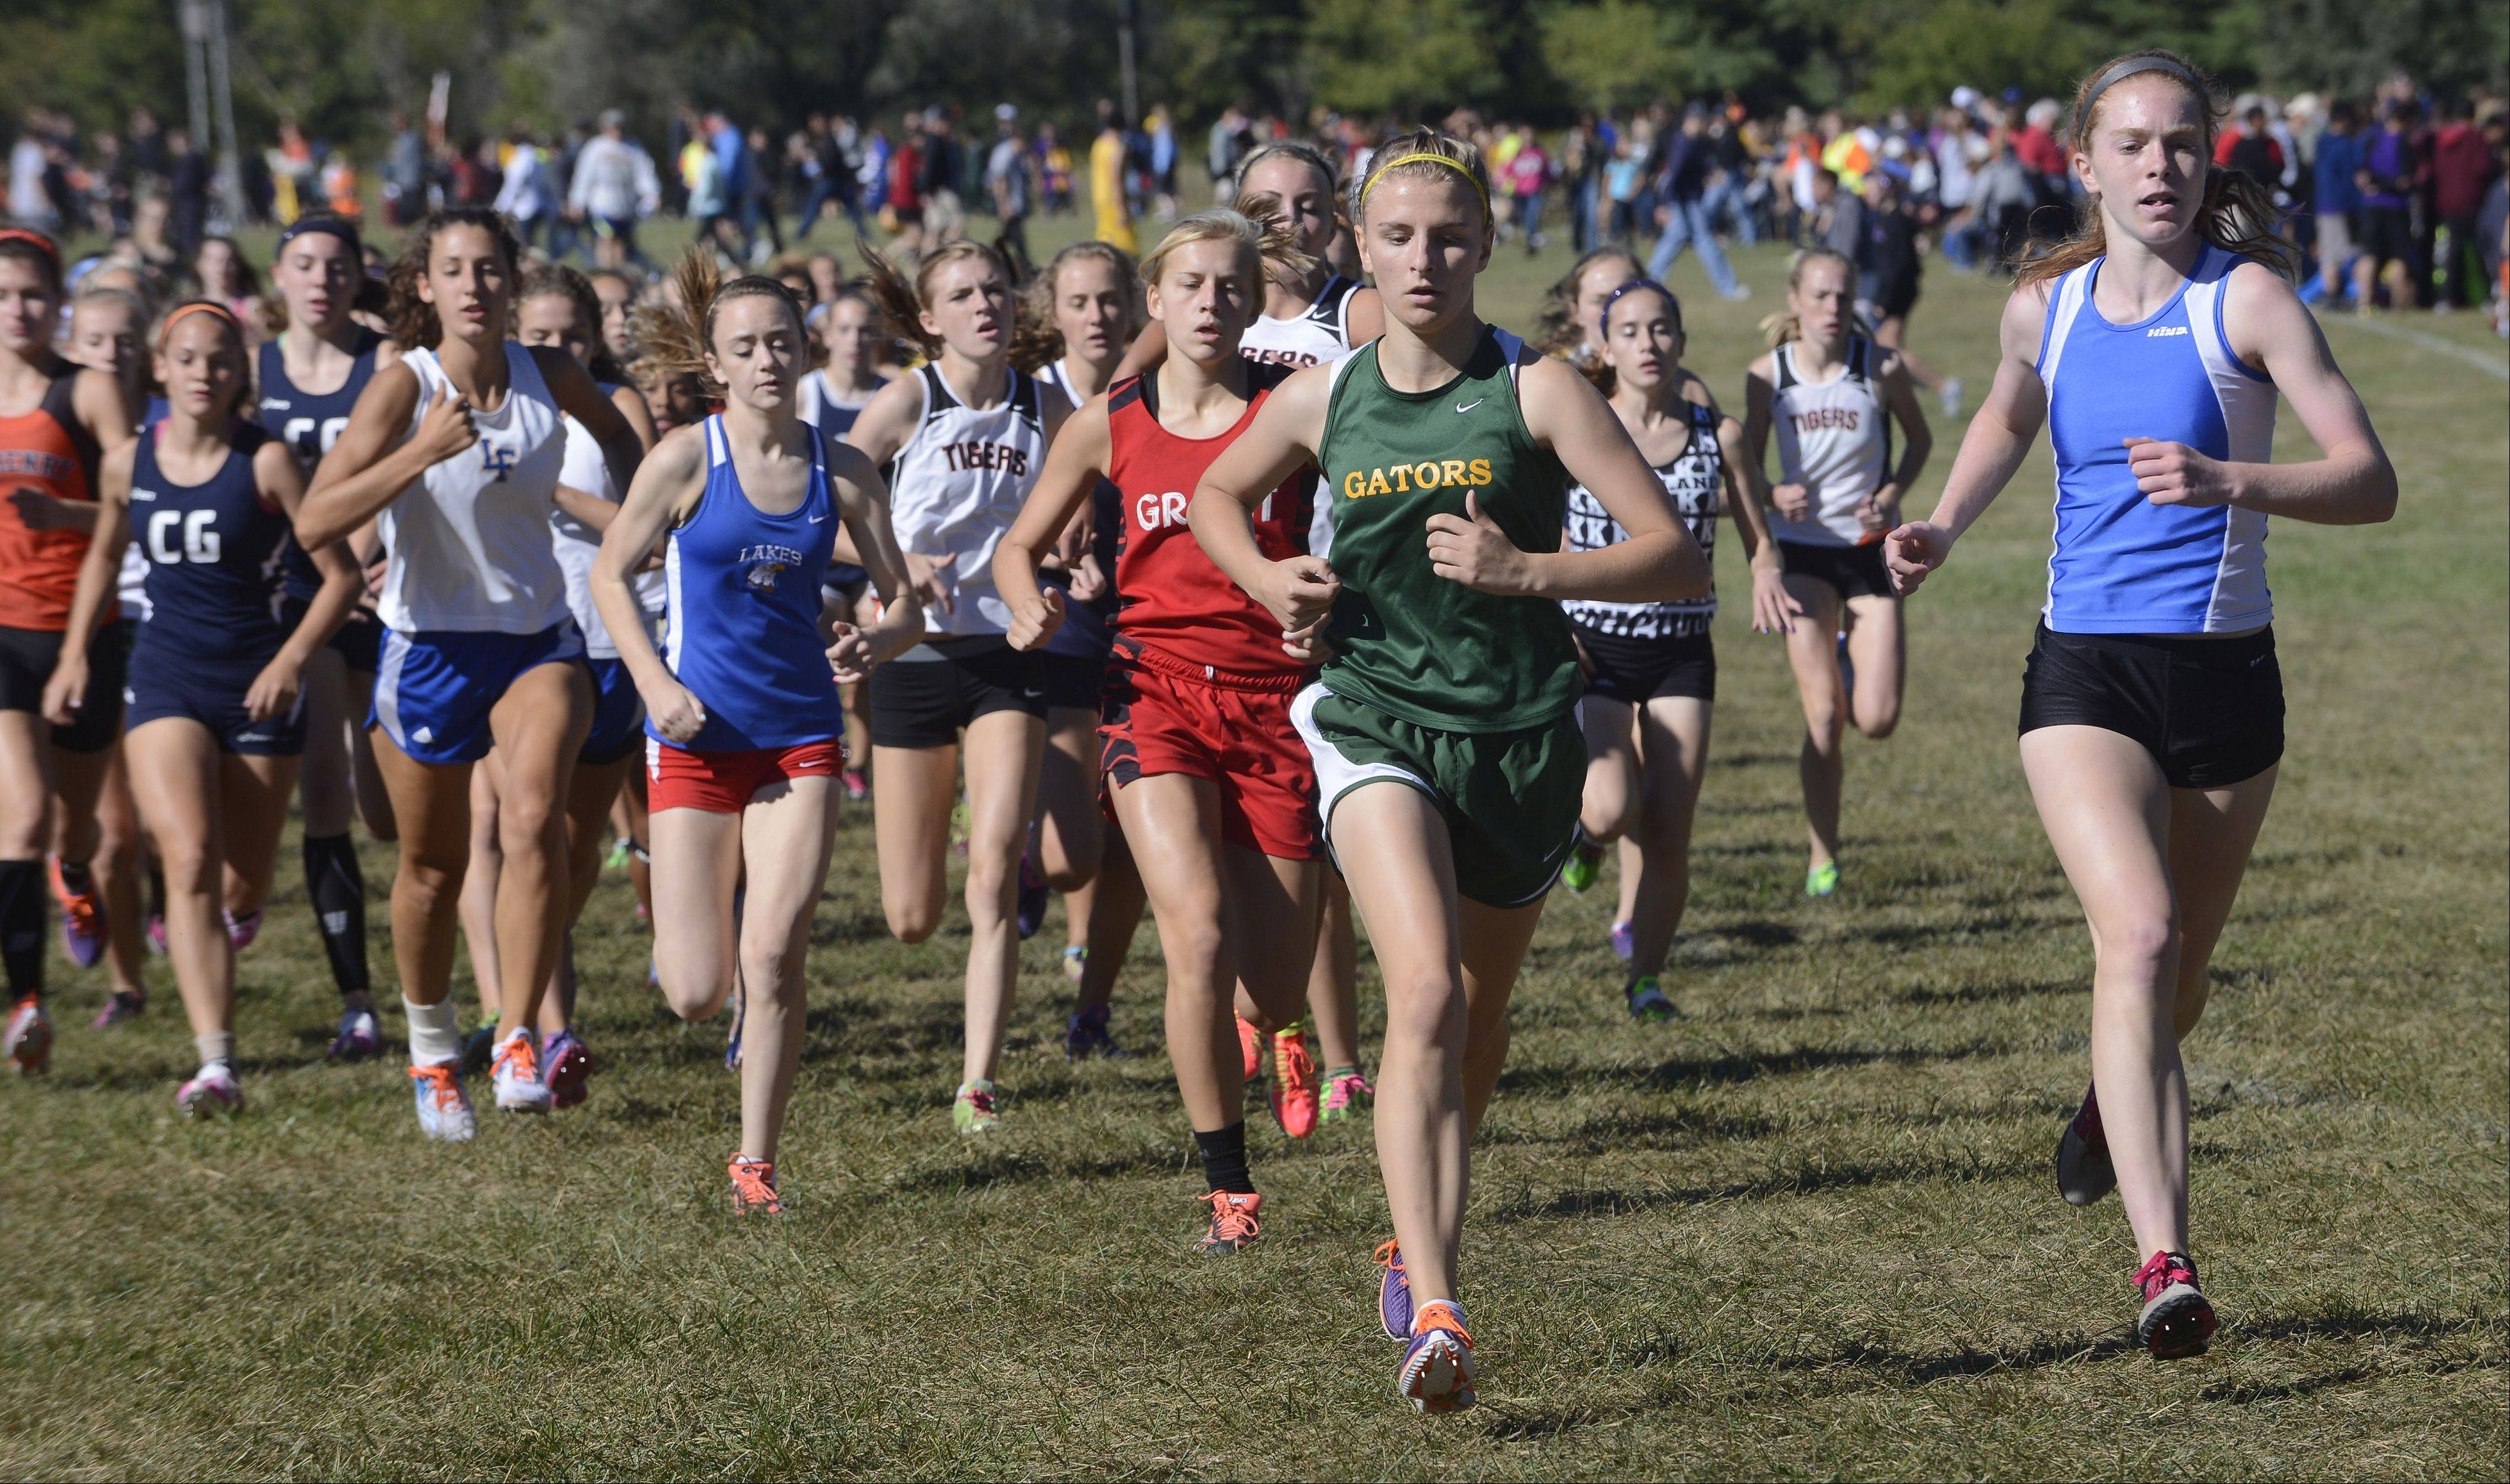 First-place finisher Meaghan Gelinas of Lake Zurich, right, makes an early move to the front during the Wauconda cross country invitational at Lakewood Forest Preserve on Saturday.